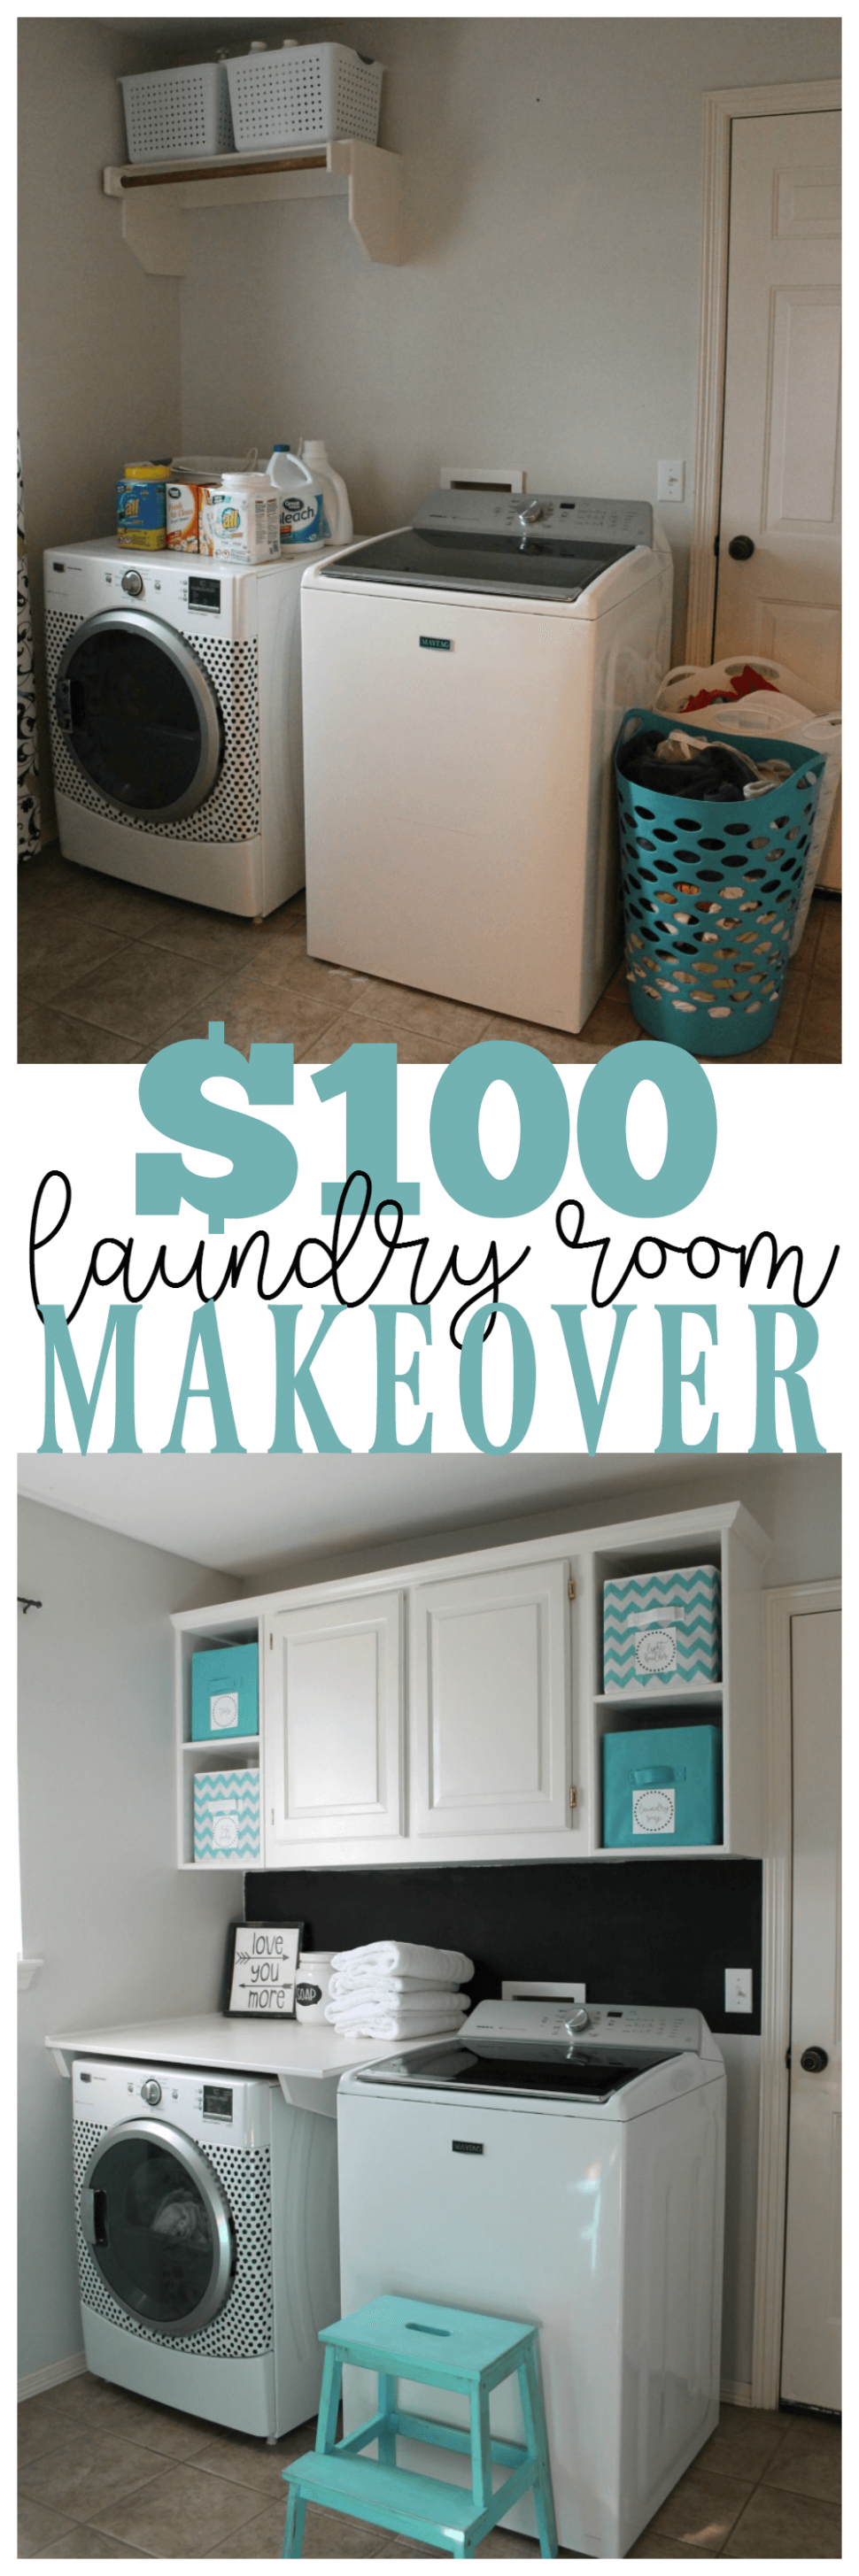 8 Before and After: Budget Friendly Laundry Room Makeover Ideas ..